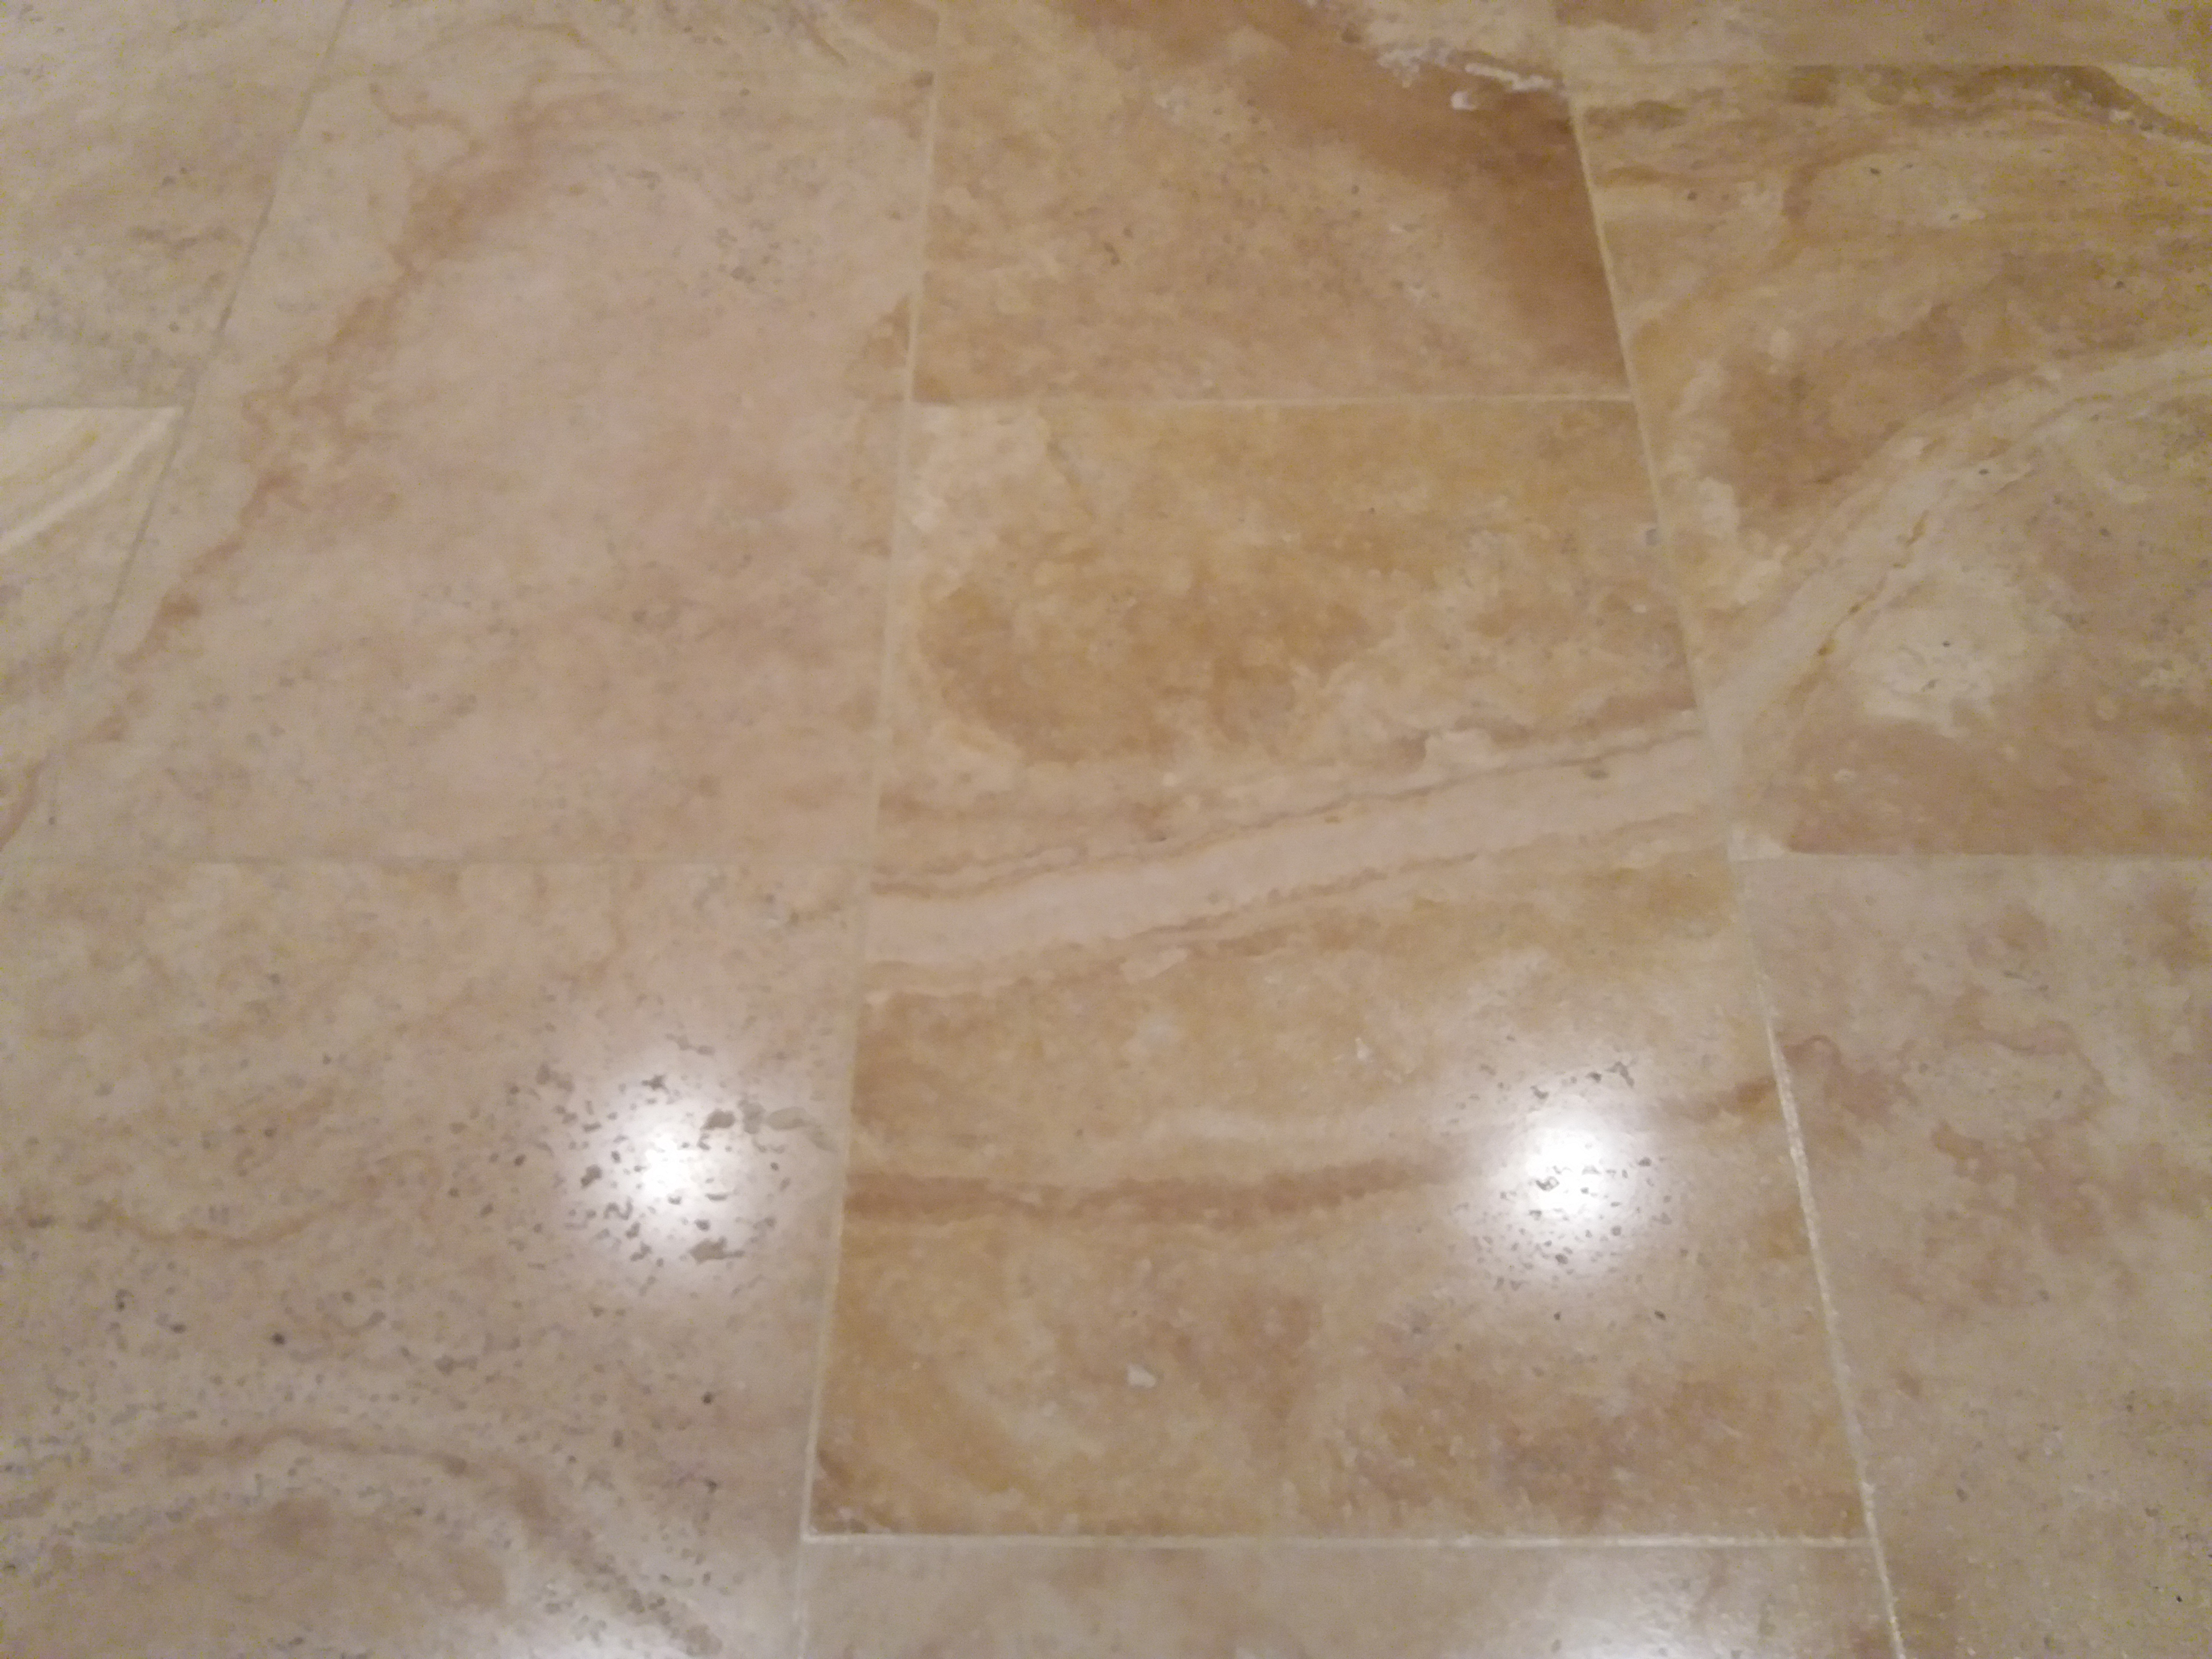 do flooring cleaning don clean how to sefa travertine dos floor stone ts s donts